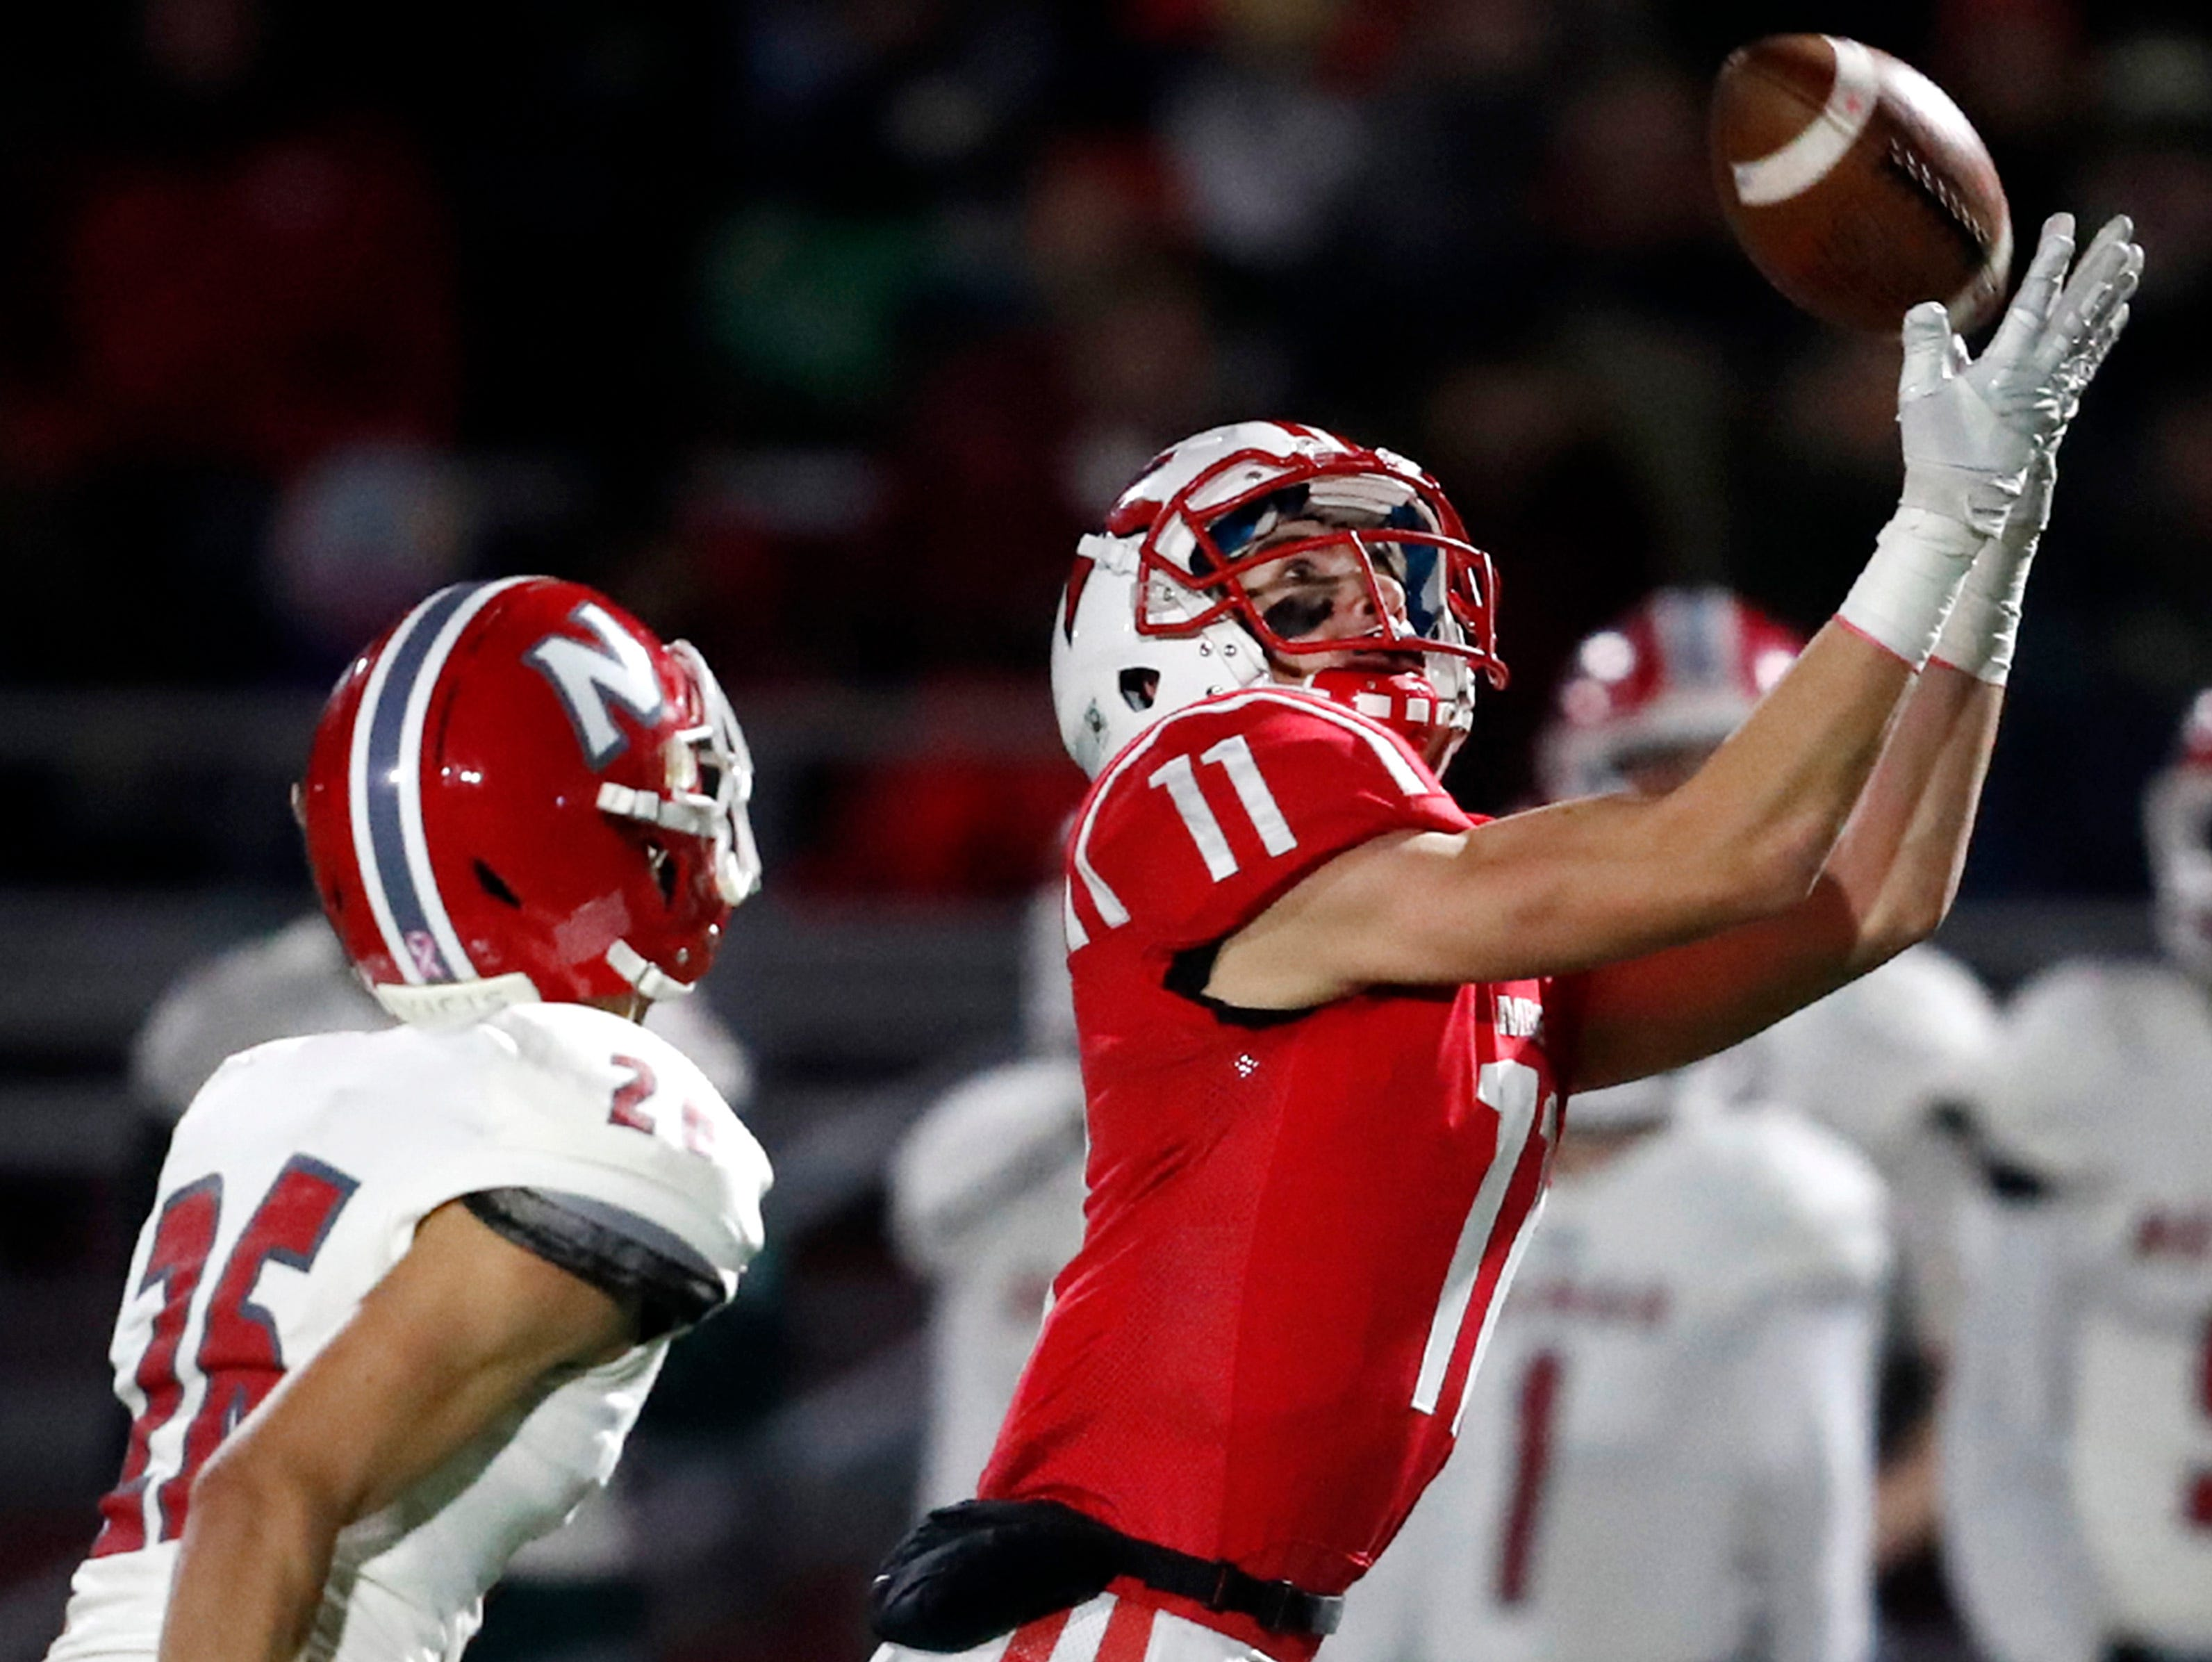 Kimberly High SchoolÕs Conner Wnek makes a catch while being covered by Neenah High School's Jack VanDyke during their round 2 playoff game Friday, Oct. 26, 2018, in Kimberly, Wis.Danny Damiani/USA TODAY NETWORK-Wisconsin